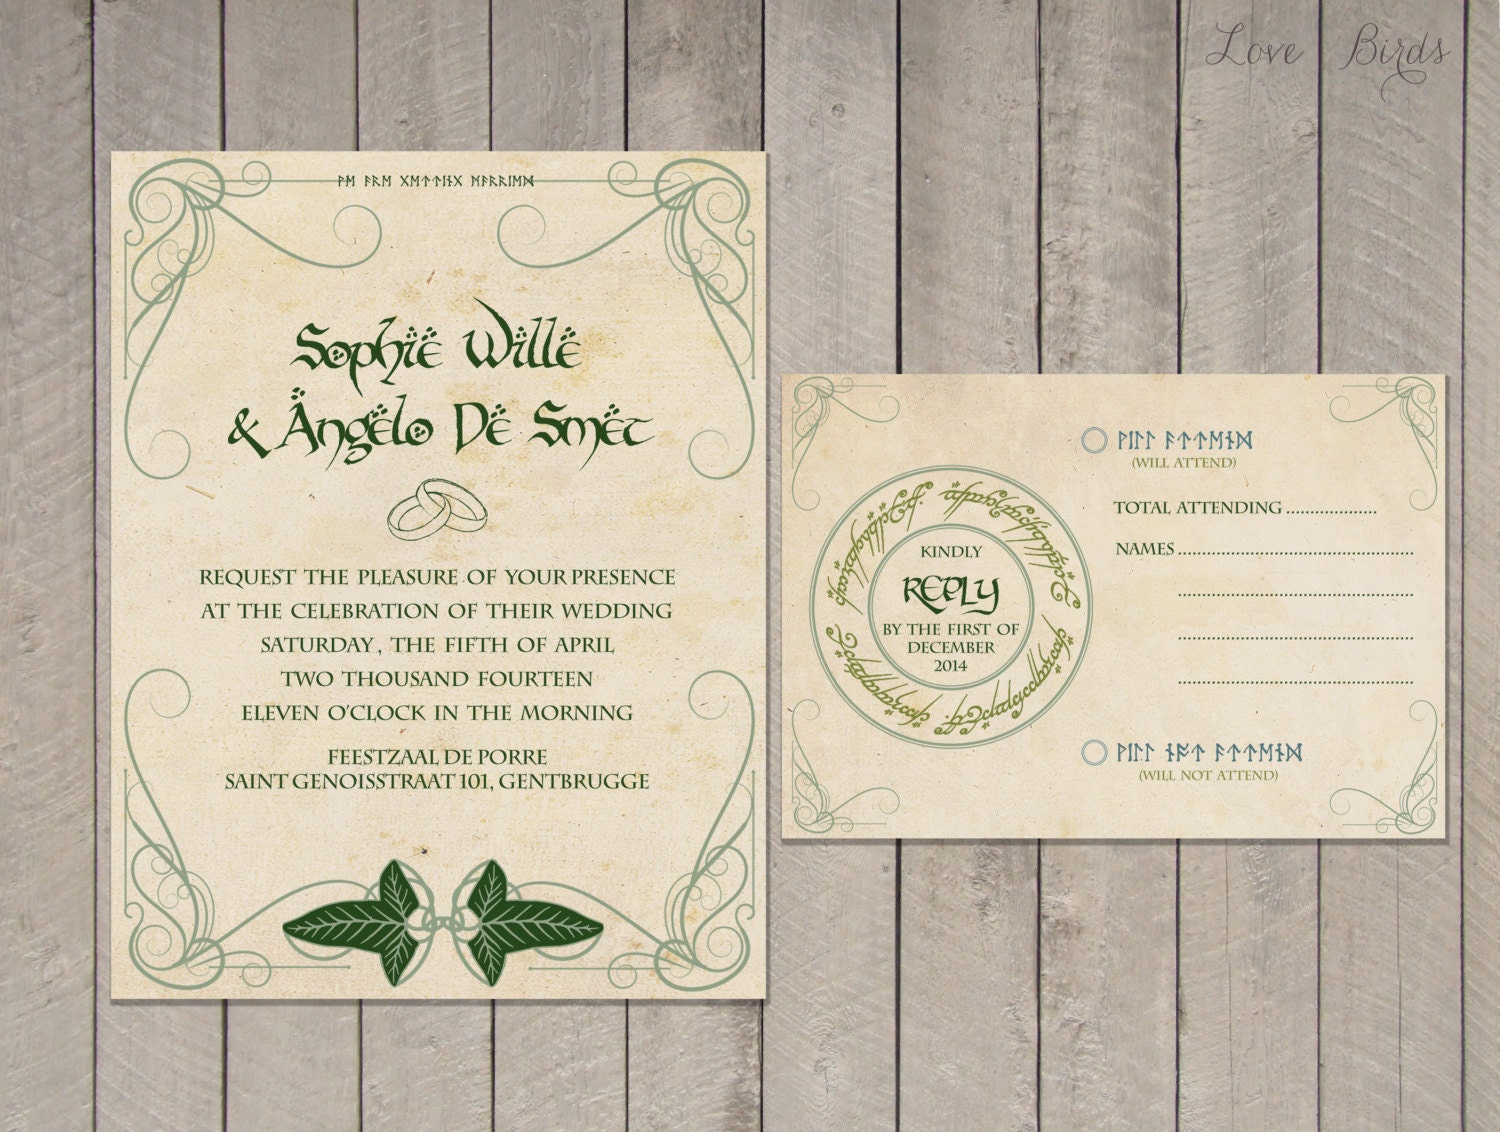 Parts Of Wedding Invitation: Lord Of The Rings Wedding Invitations: Part One